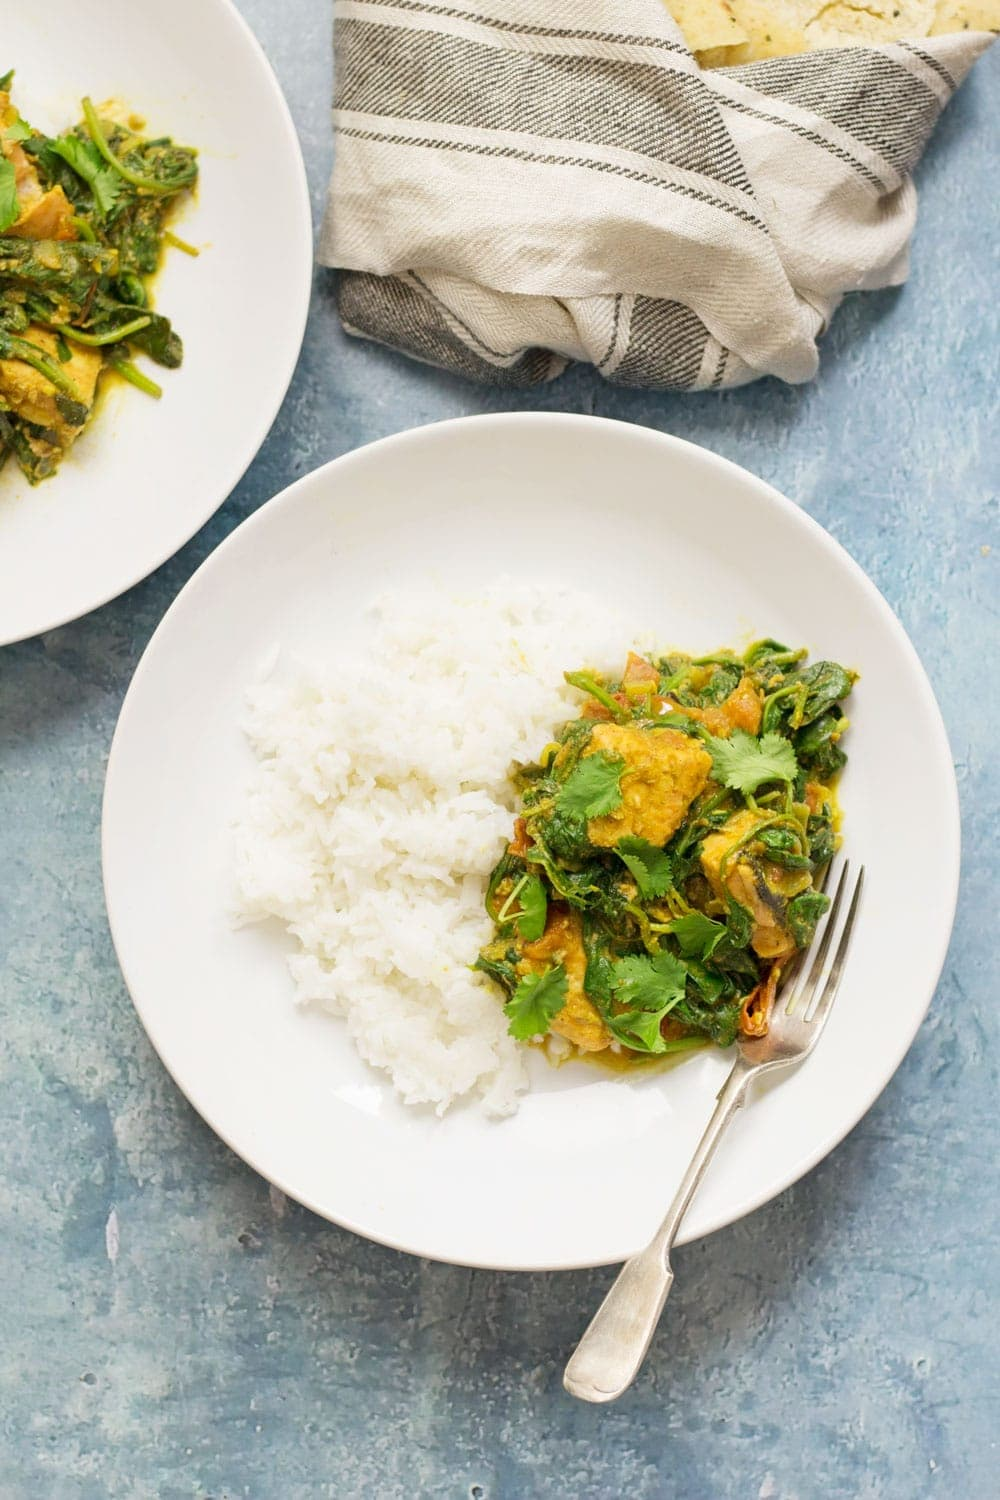 Salmon and tomato curry is a tasty change from a traditional curry recipe. Not only that but the spinach, tomato and salmon make it a healthier option too!